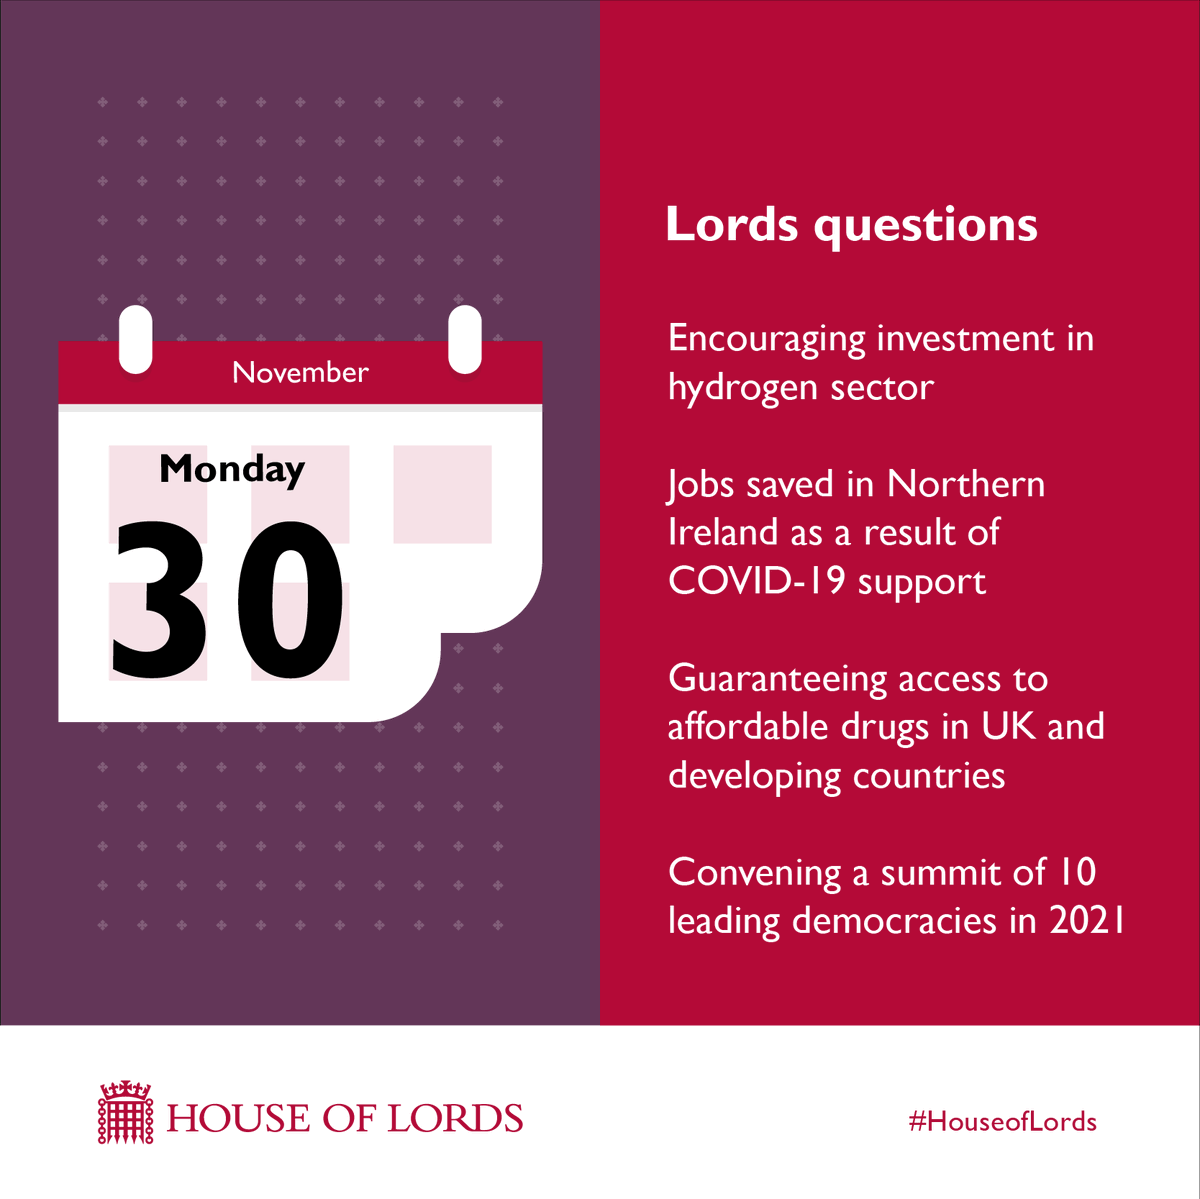 Yesterday the @UKHouseofLords held a session on supporting private investment in UK hydrogen.  Included answers on:  - Skilling-up workforce - Blue vs green investment - Heat pump roll-out - Funding committed - H2 bus production - H2 in Wales  Read here: https://t.co/IhoNss5aEX